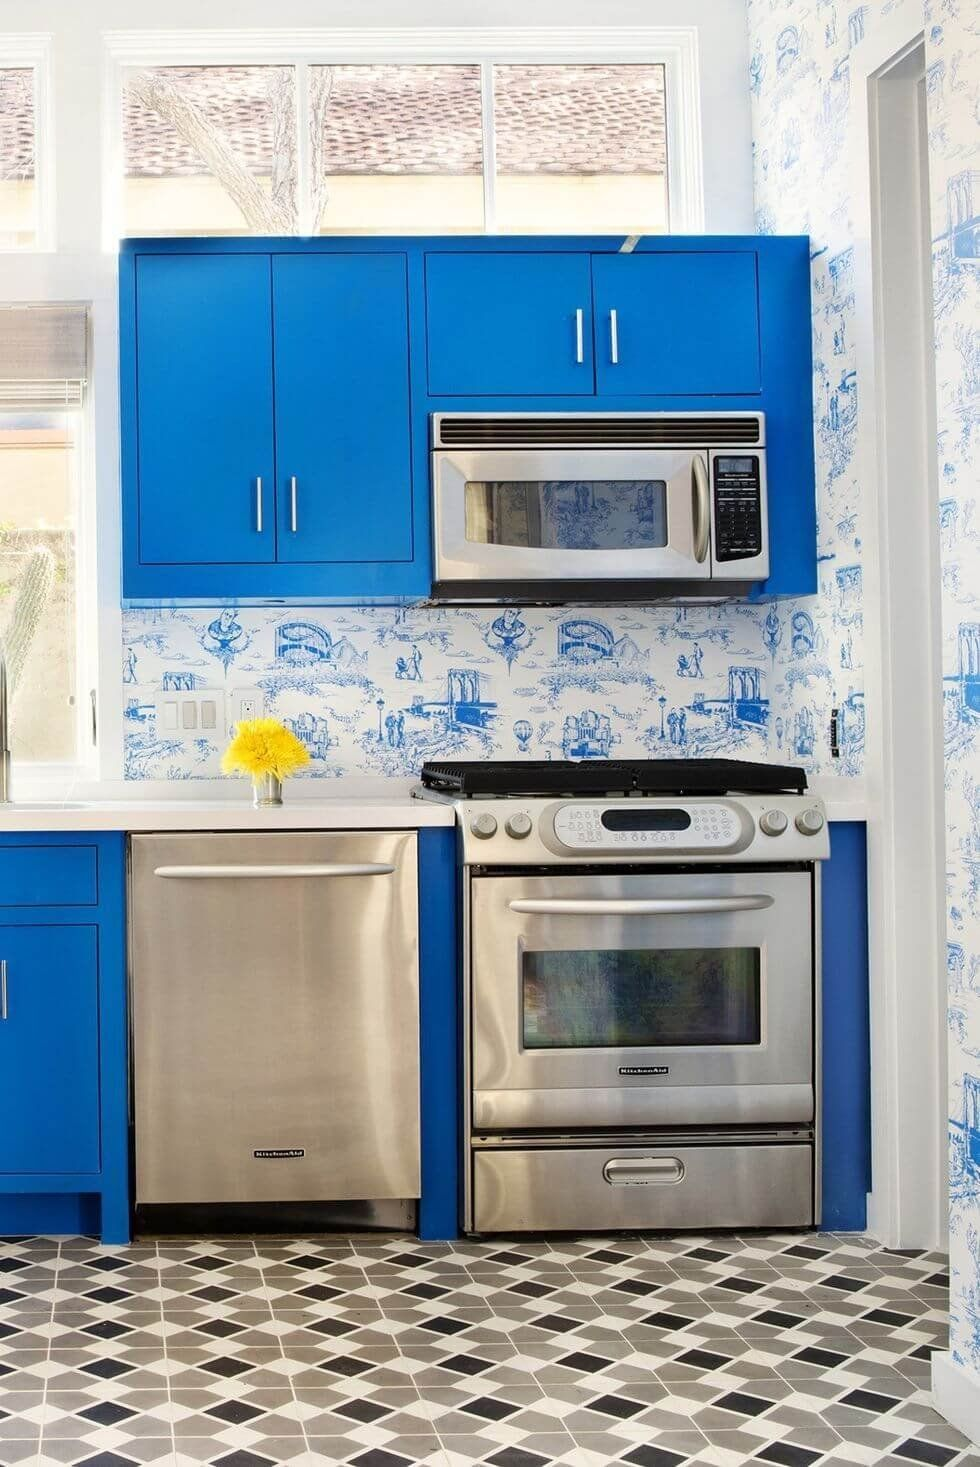 25 Great Small Kitchen Ideas That Can Inspire You Enthusiasthome In 2021 Kitchen Cupboard Designs Kitchen Remodel Small Kitchen Layout